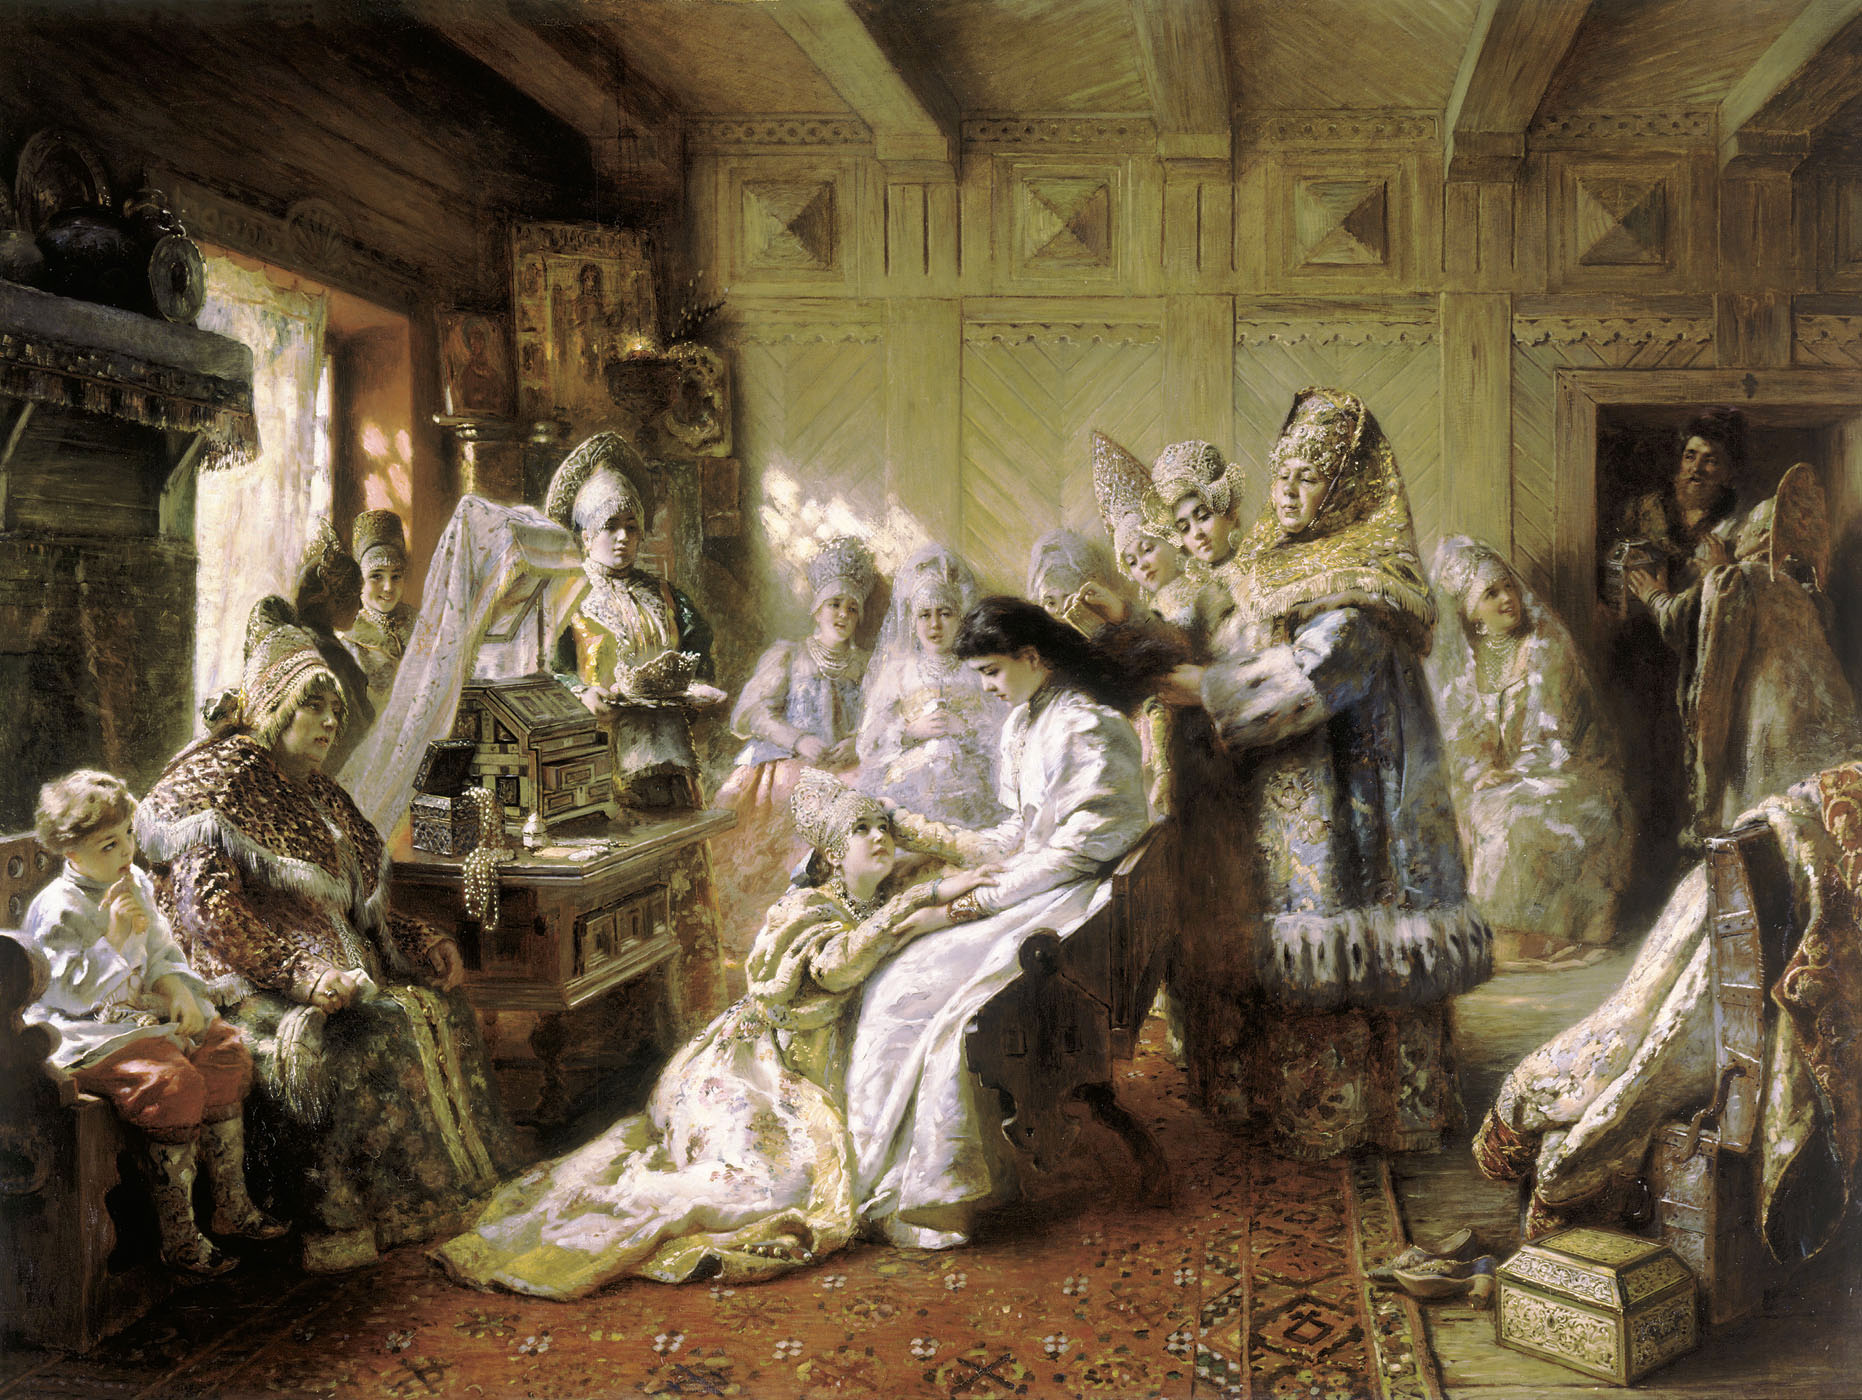 https://i0.wp.com/upload.wikimedia.org/wikipedia/commons/4/43/The_Russian_Bride%27s_Attire_-_Konstantin_Makovsky.jpg